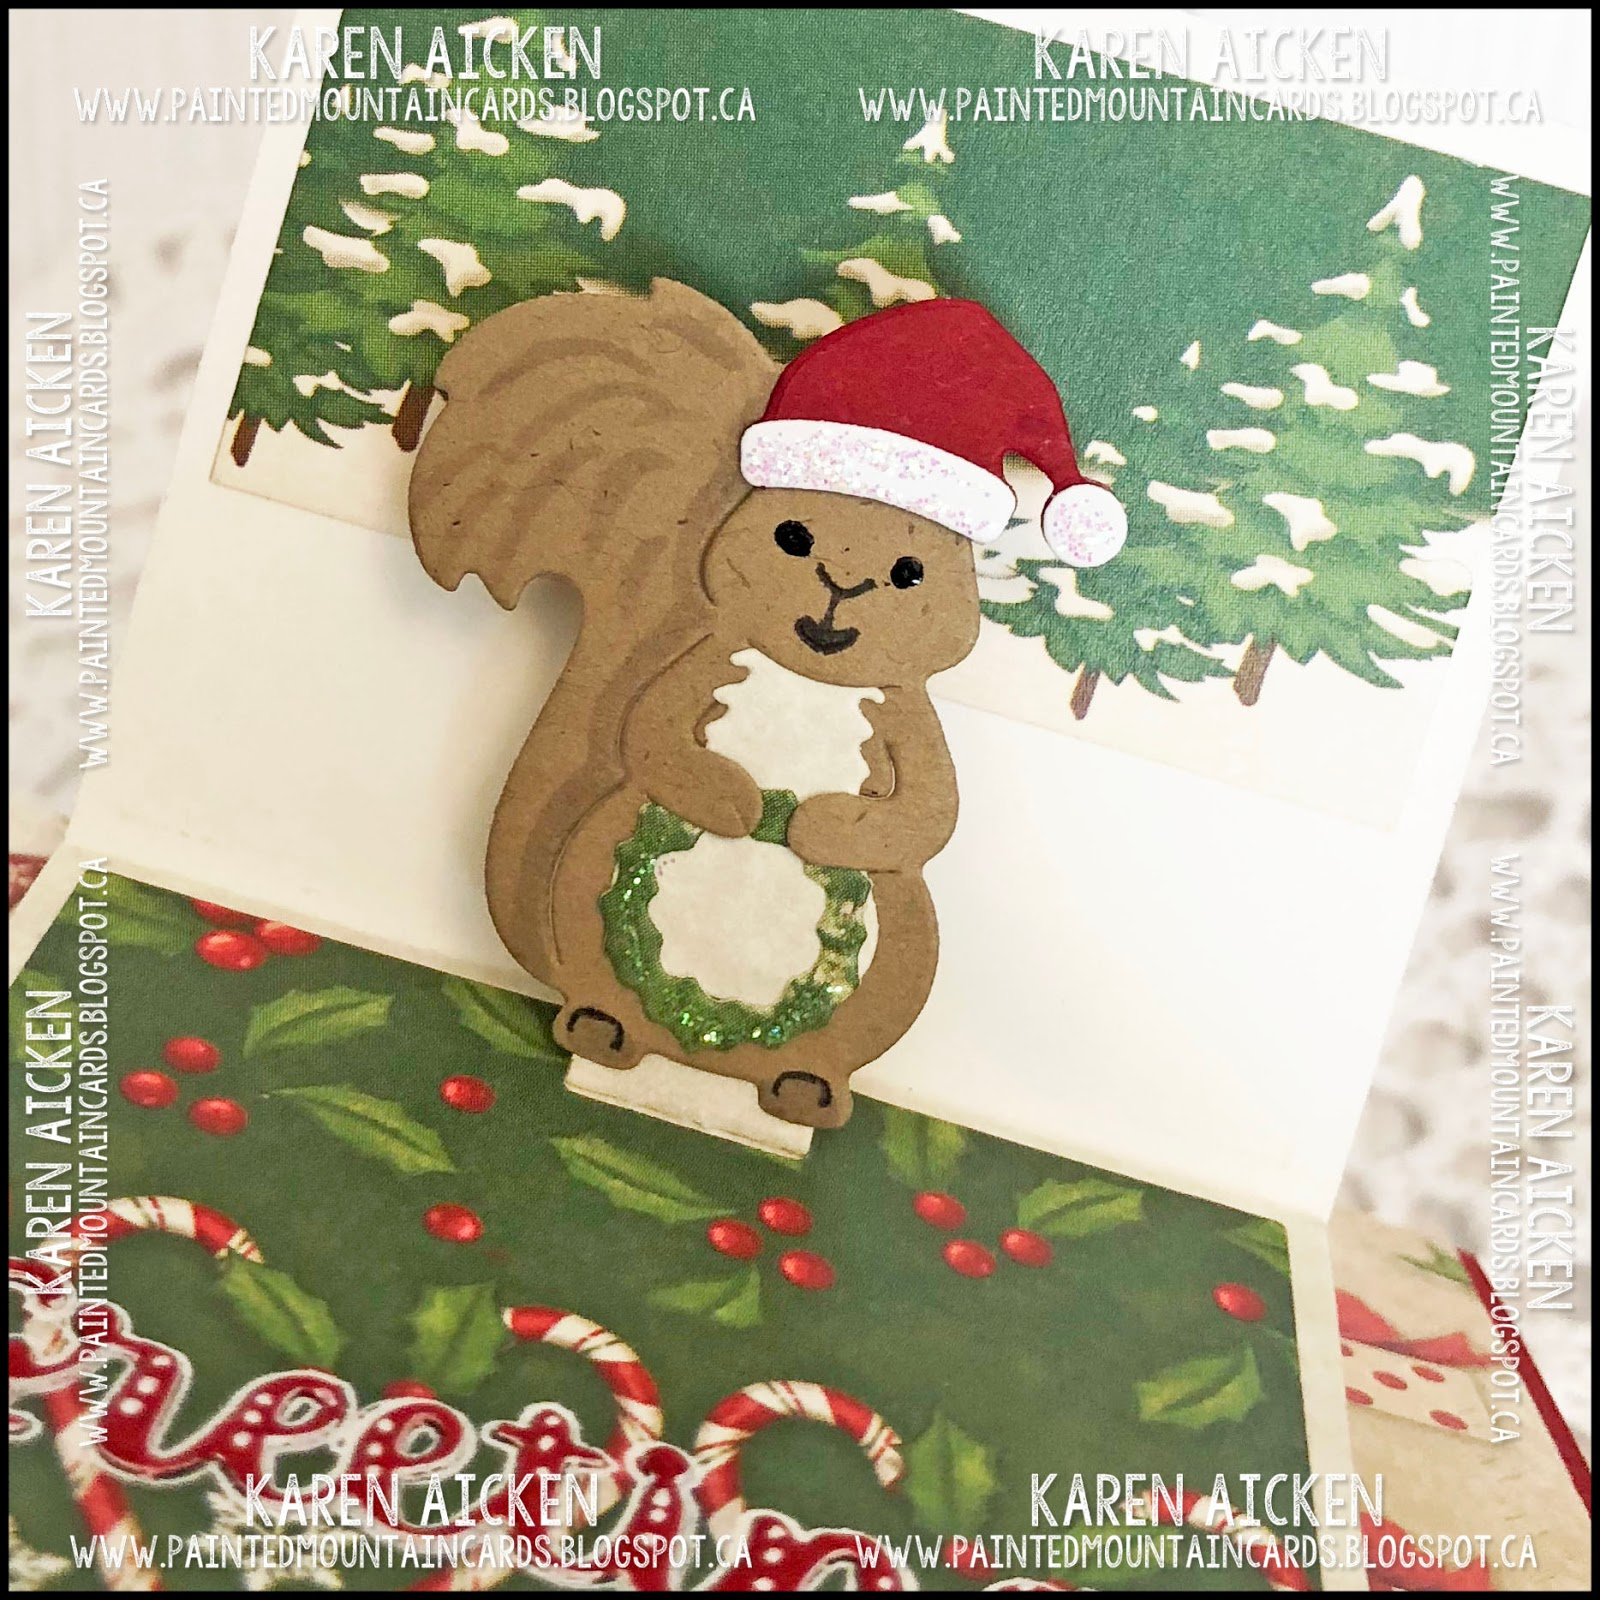 Painted Mountain Cards: Happy Christmas Frame Pull Card